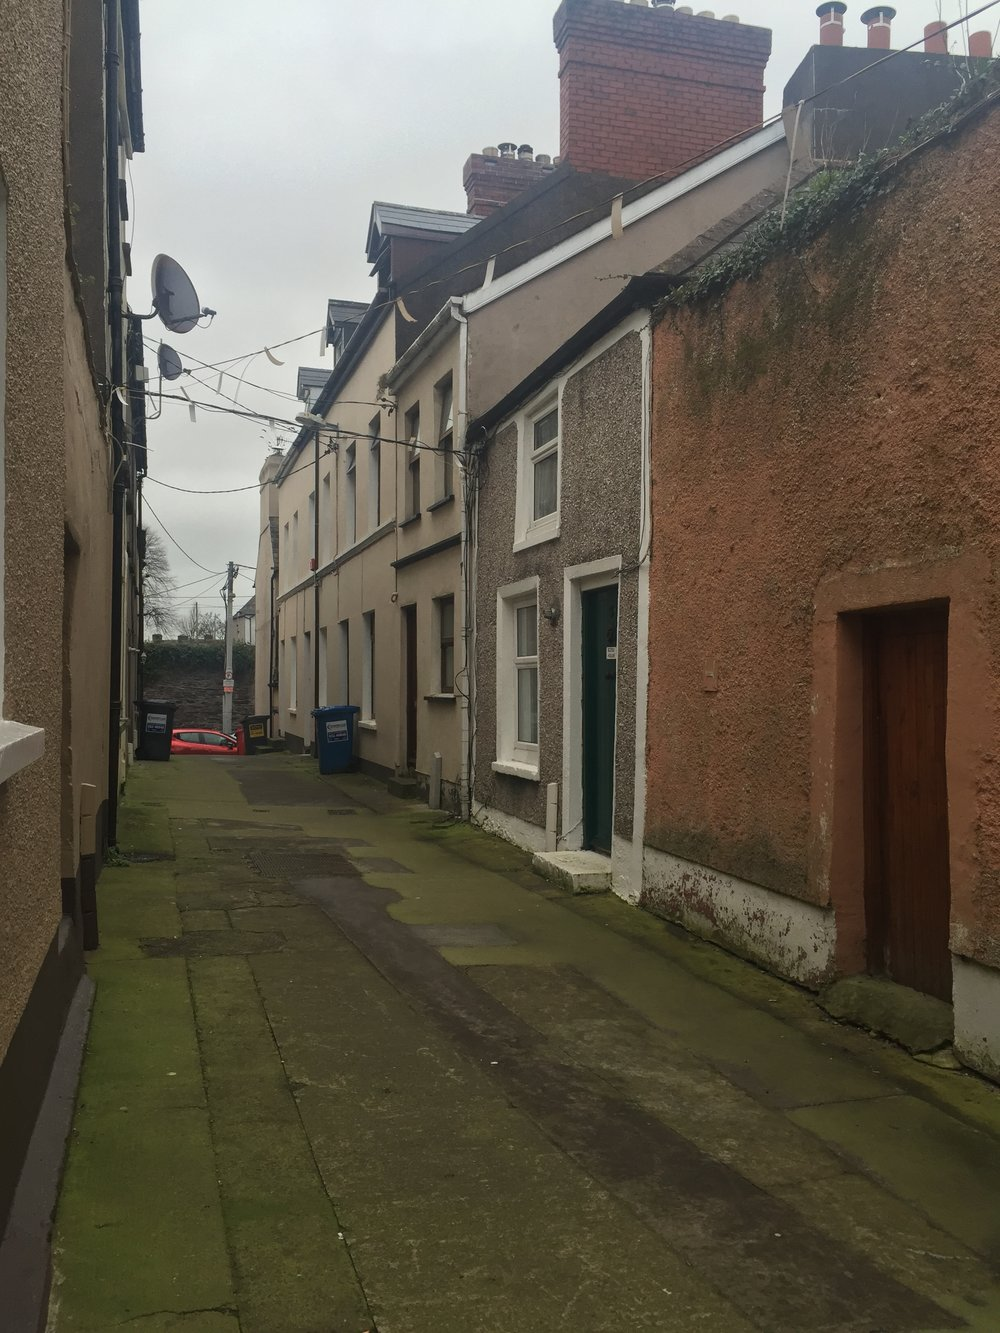 My Airbnb.  Bijou house in the Shandon section of Cork City.  Ancestral home, just around the corner.